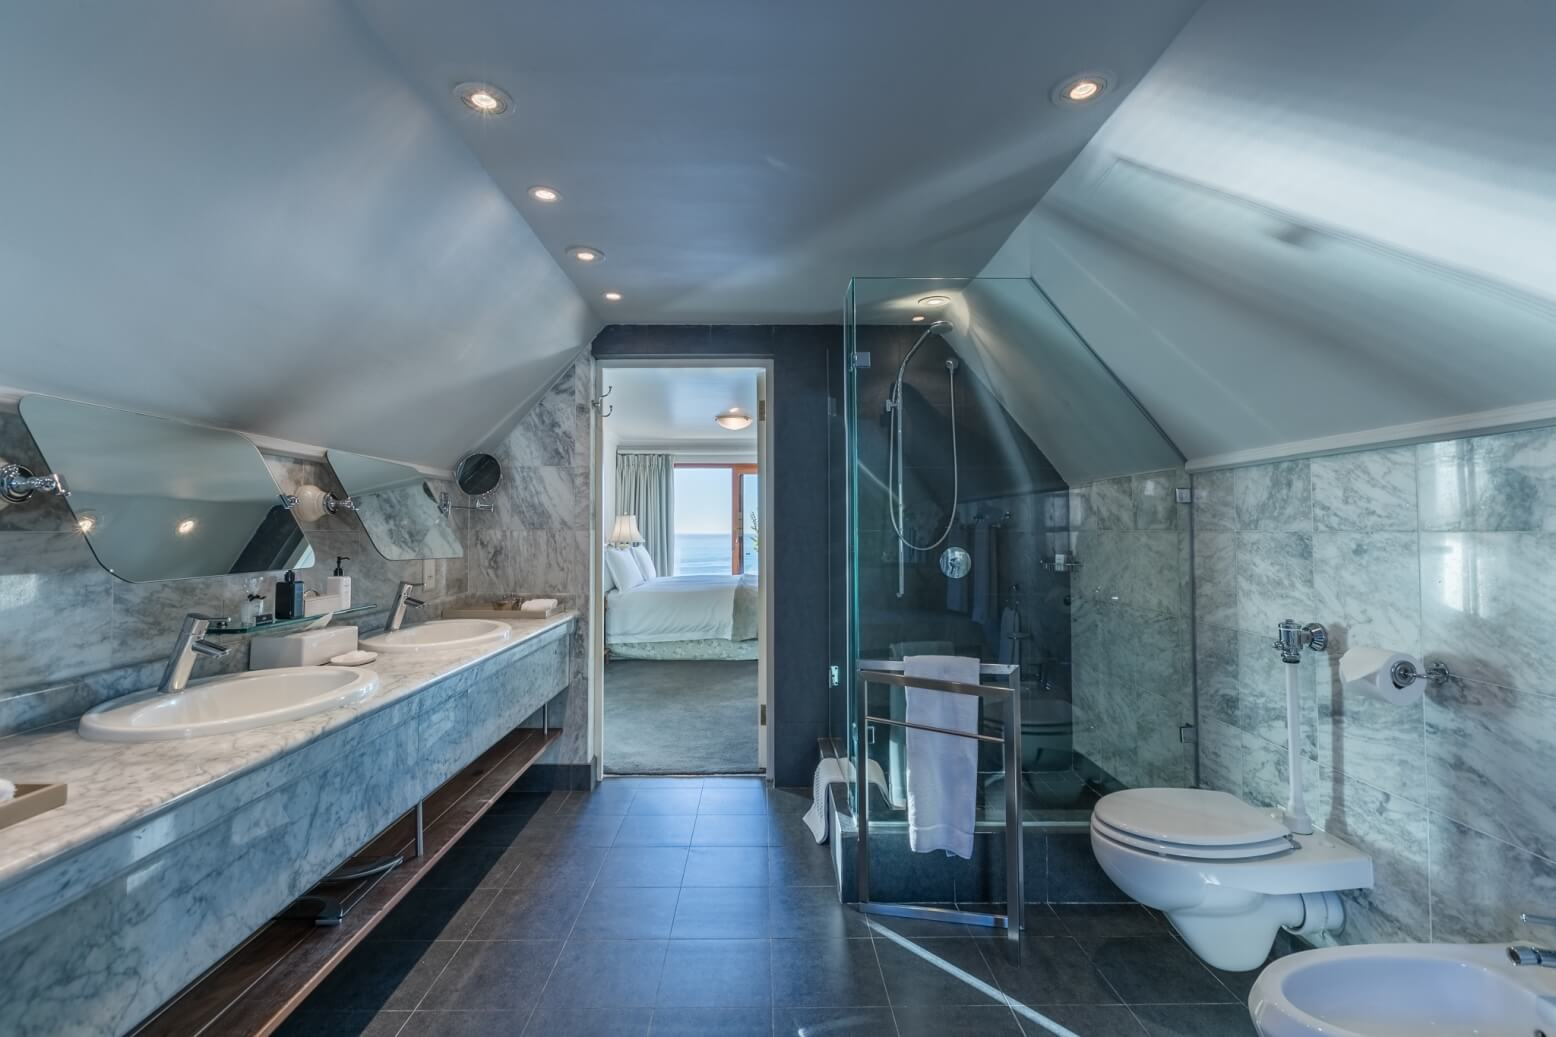 Bathroom at the Ellerman House